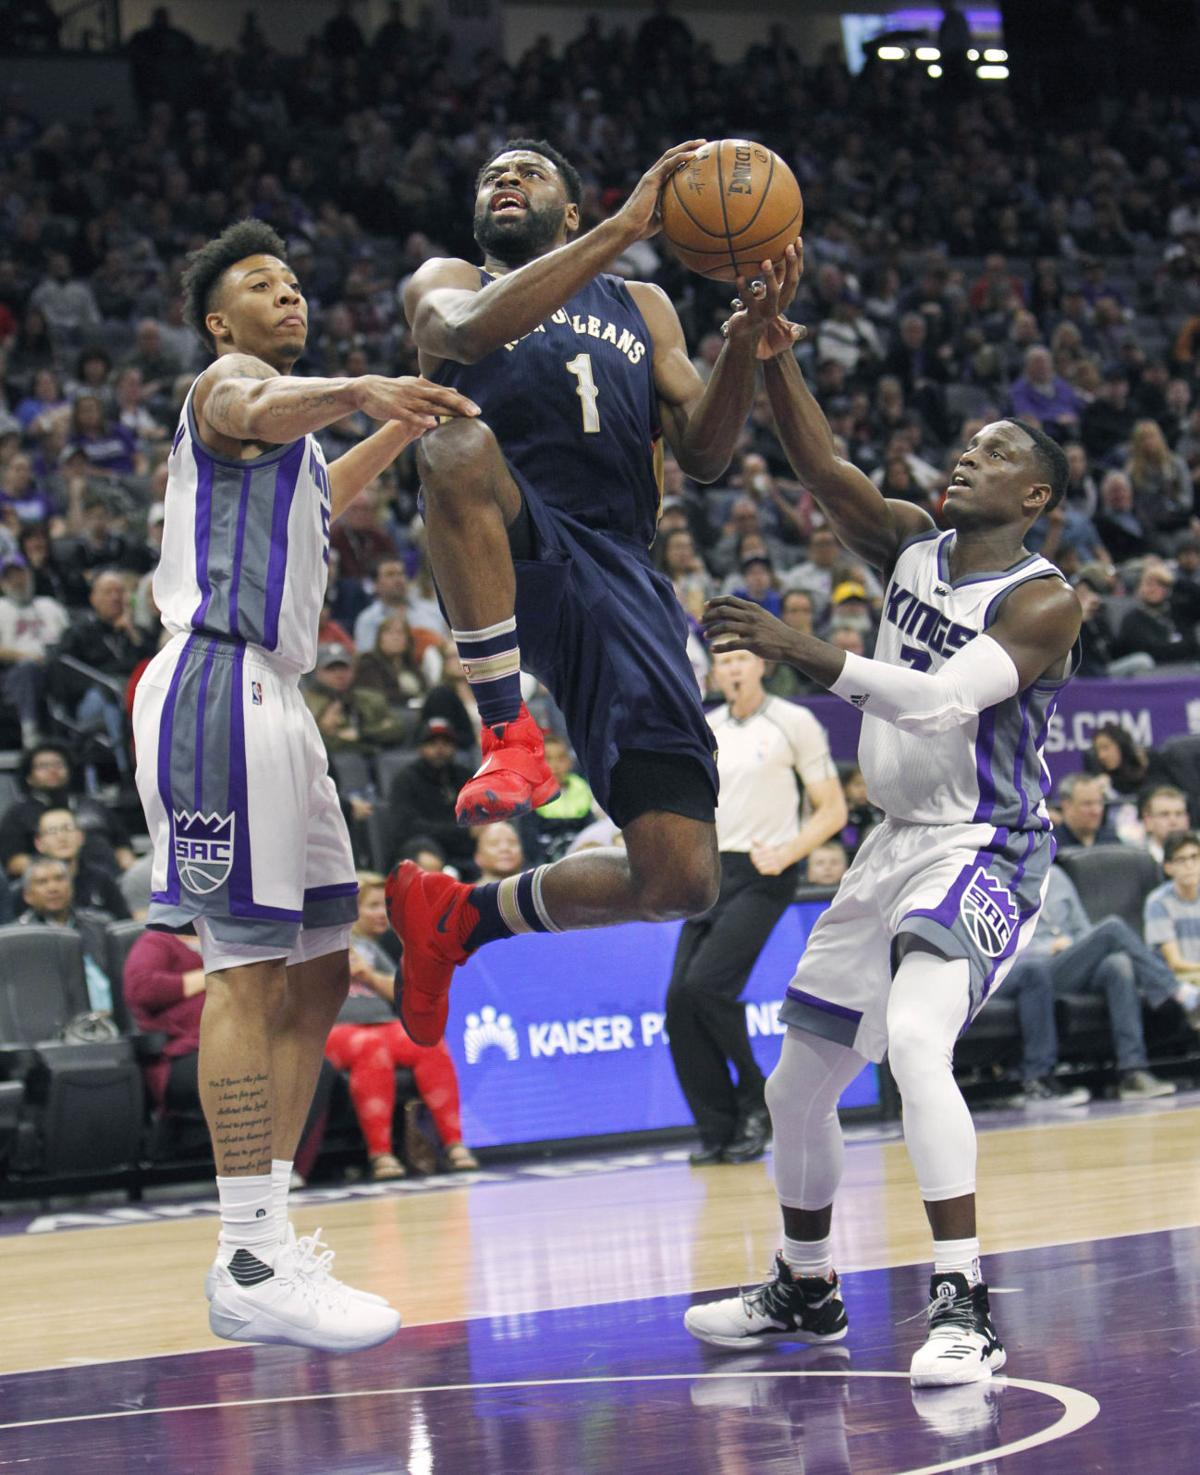 anthony davis scores 32 as pelicans lose to sacramento